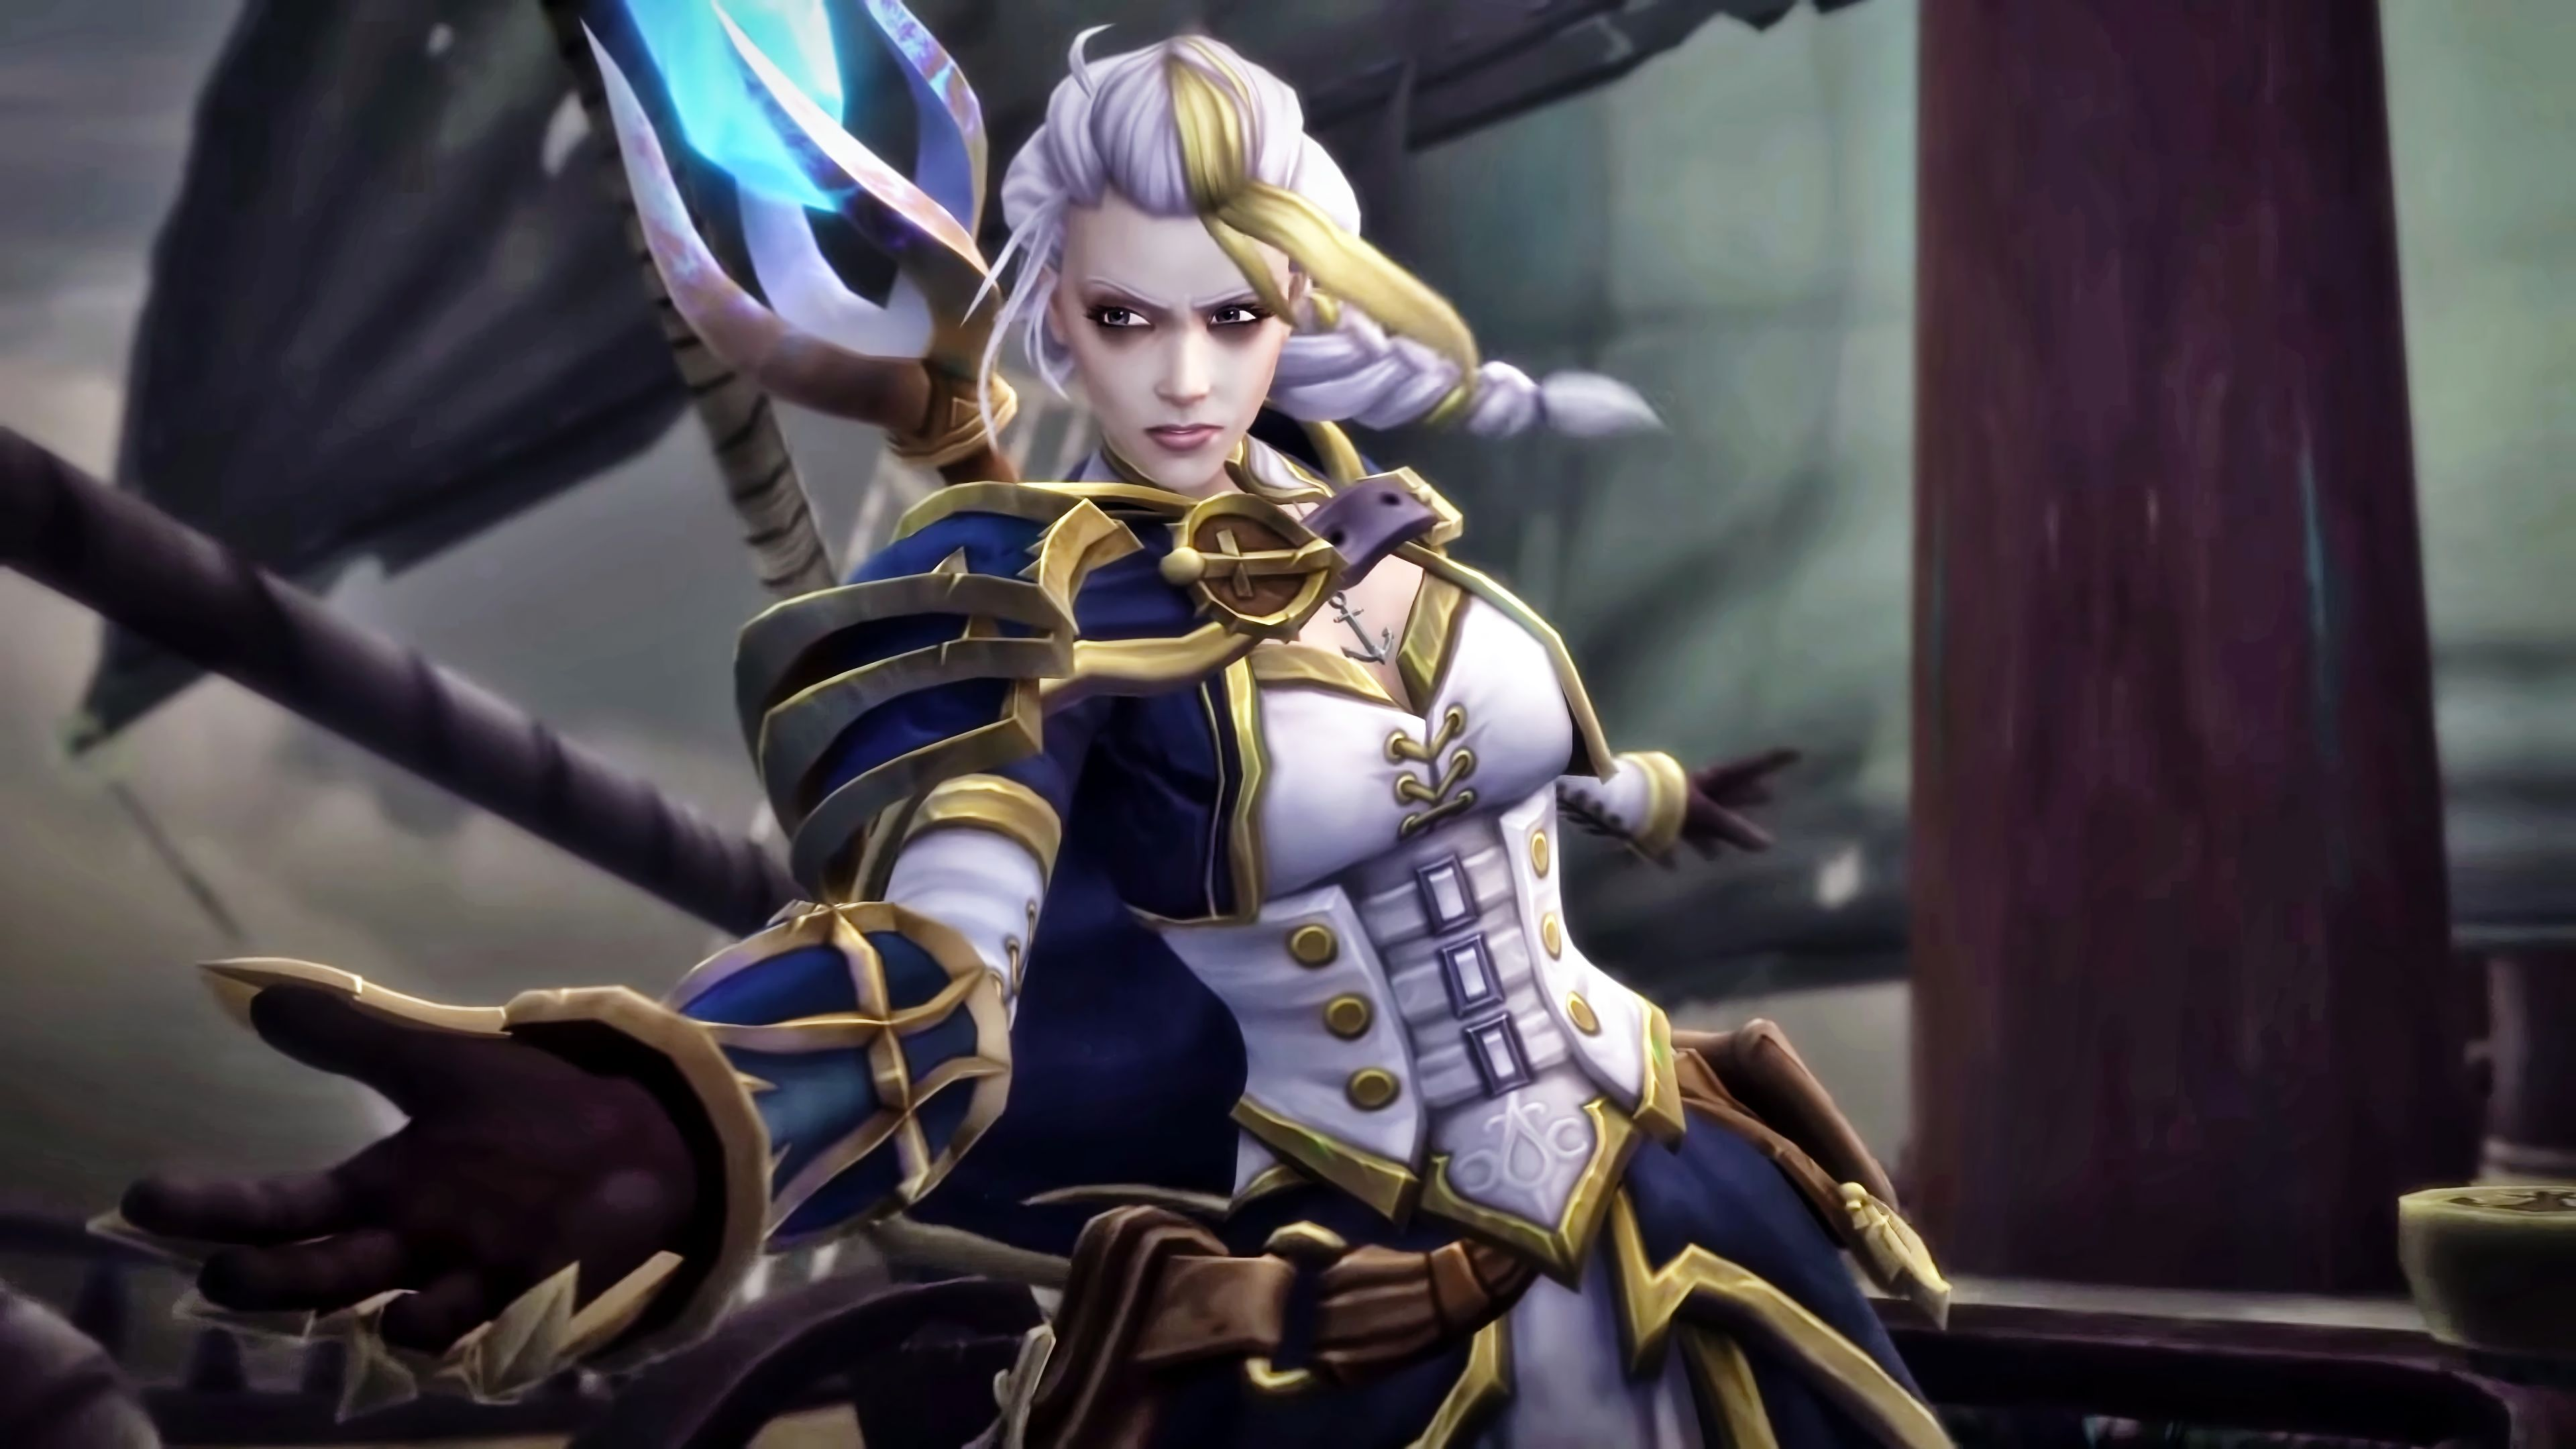 Jaina Proudmoore, World of Warcraft Battle For Azeroth